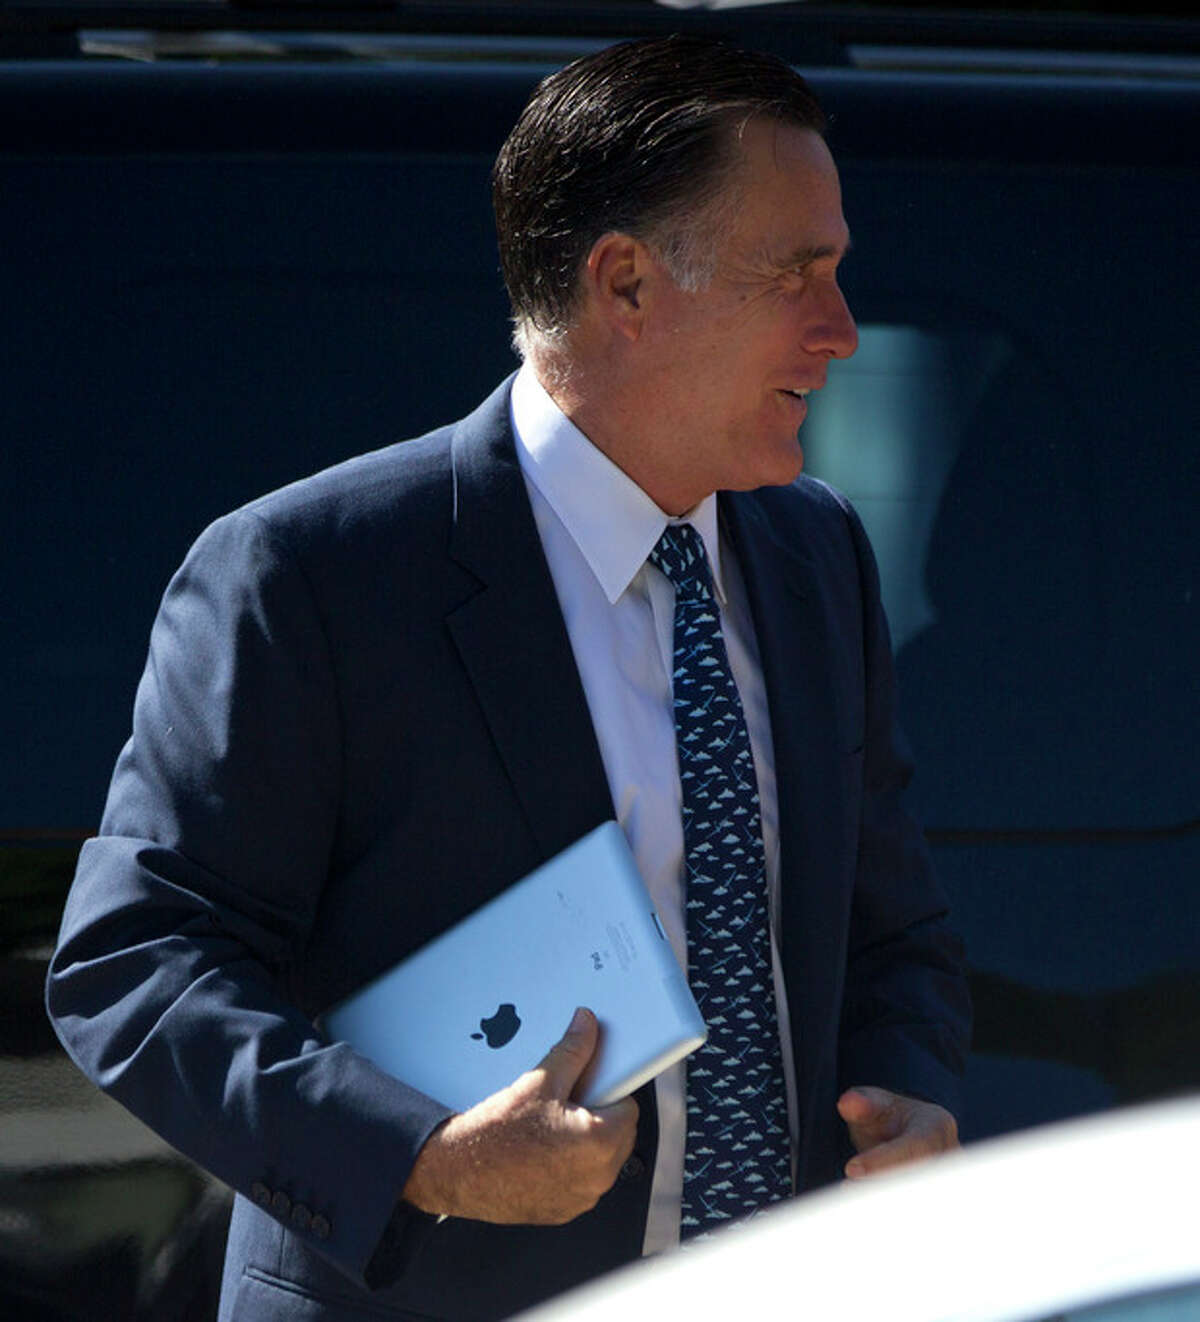 Republican presidential candidate, former Massachusetts Gov. Mitt Romney, carries an iPad as he walks into the Church of Jesus Christ of Latter-day Saints on Sunday, Aug. 19, 2012, in Wolfeboro, N.H. (AP Photo/Evan Vucci)